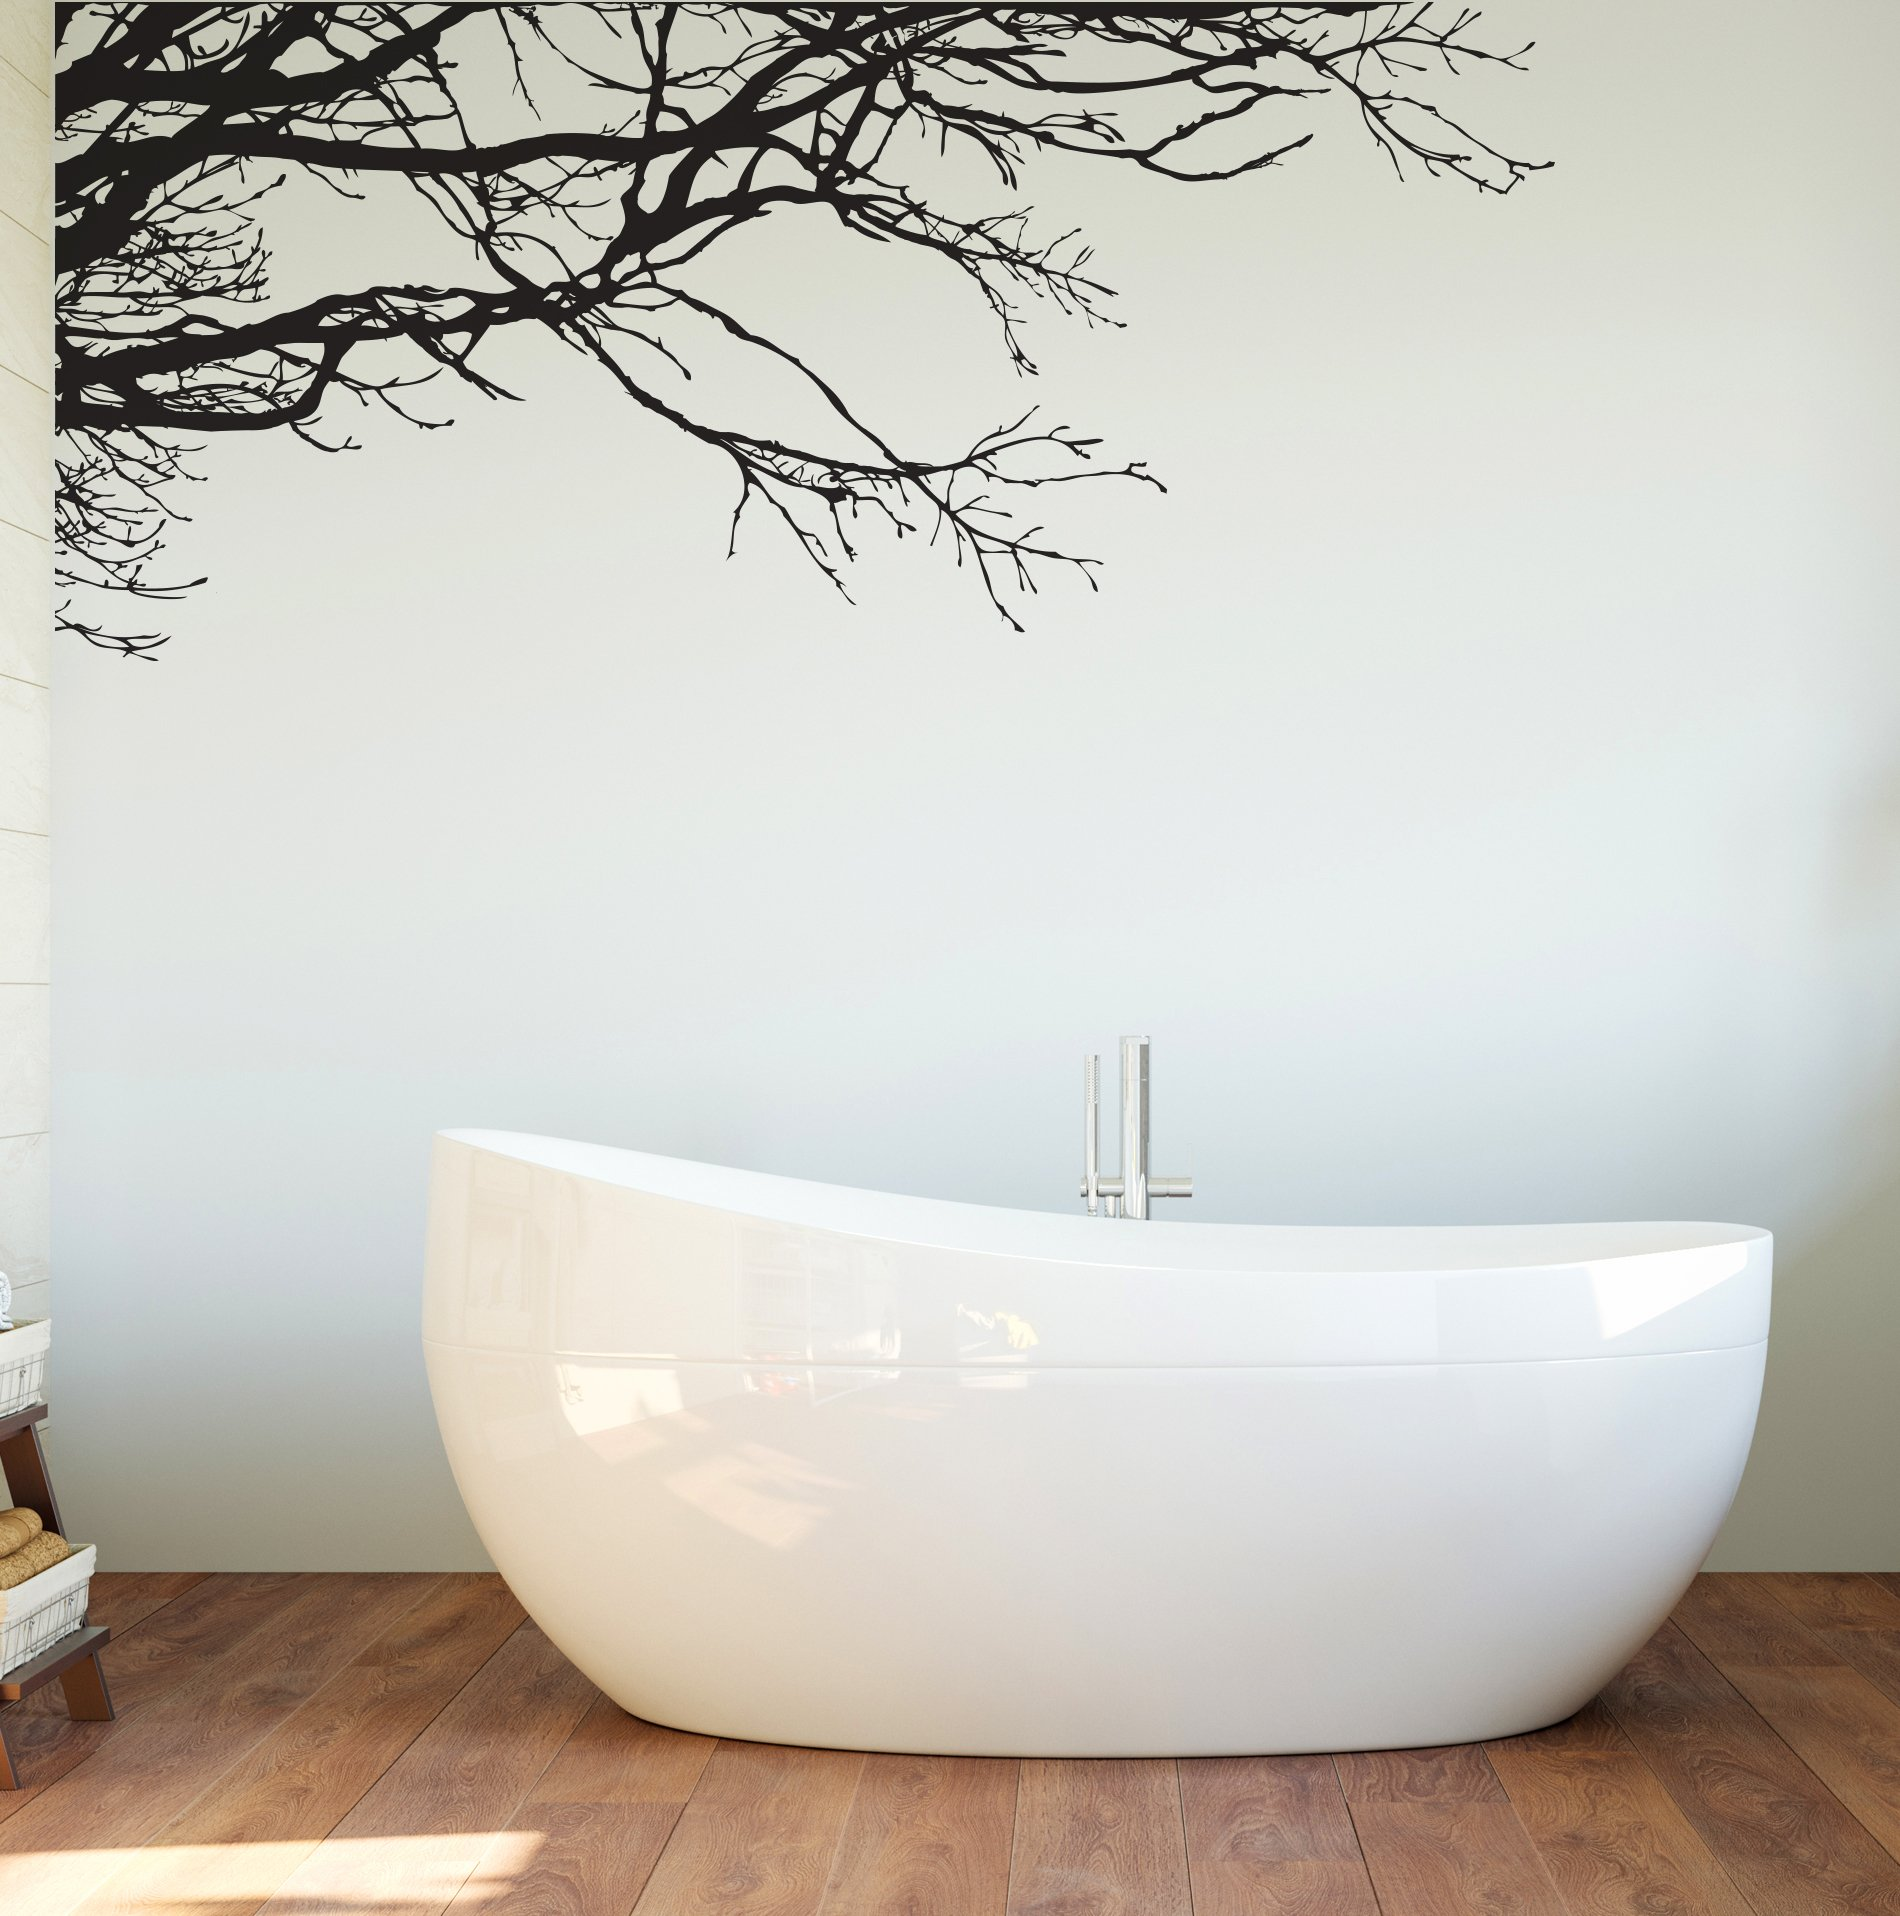 Large Tree Wall Decal Sticker - Semi-Gloss Black Tree Branches, 44in Tall X 100in Wide, Left To Right. Removable, No Paint Needed, Tree Branch Wall Stencil The Easy Way. by Stickerbrand (Image #7)